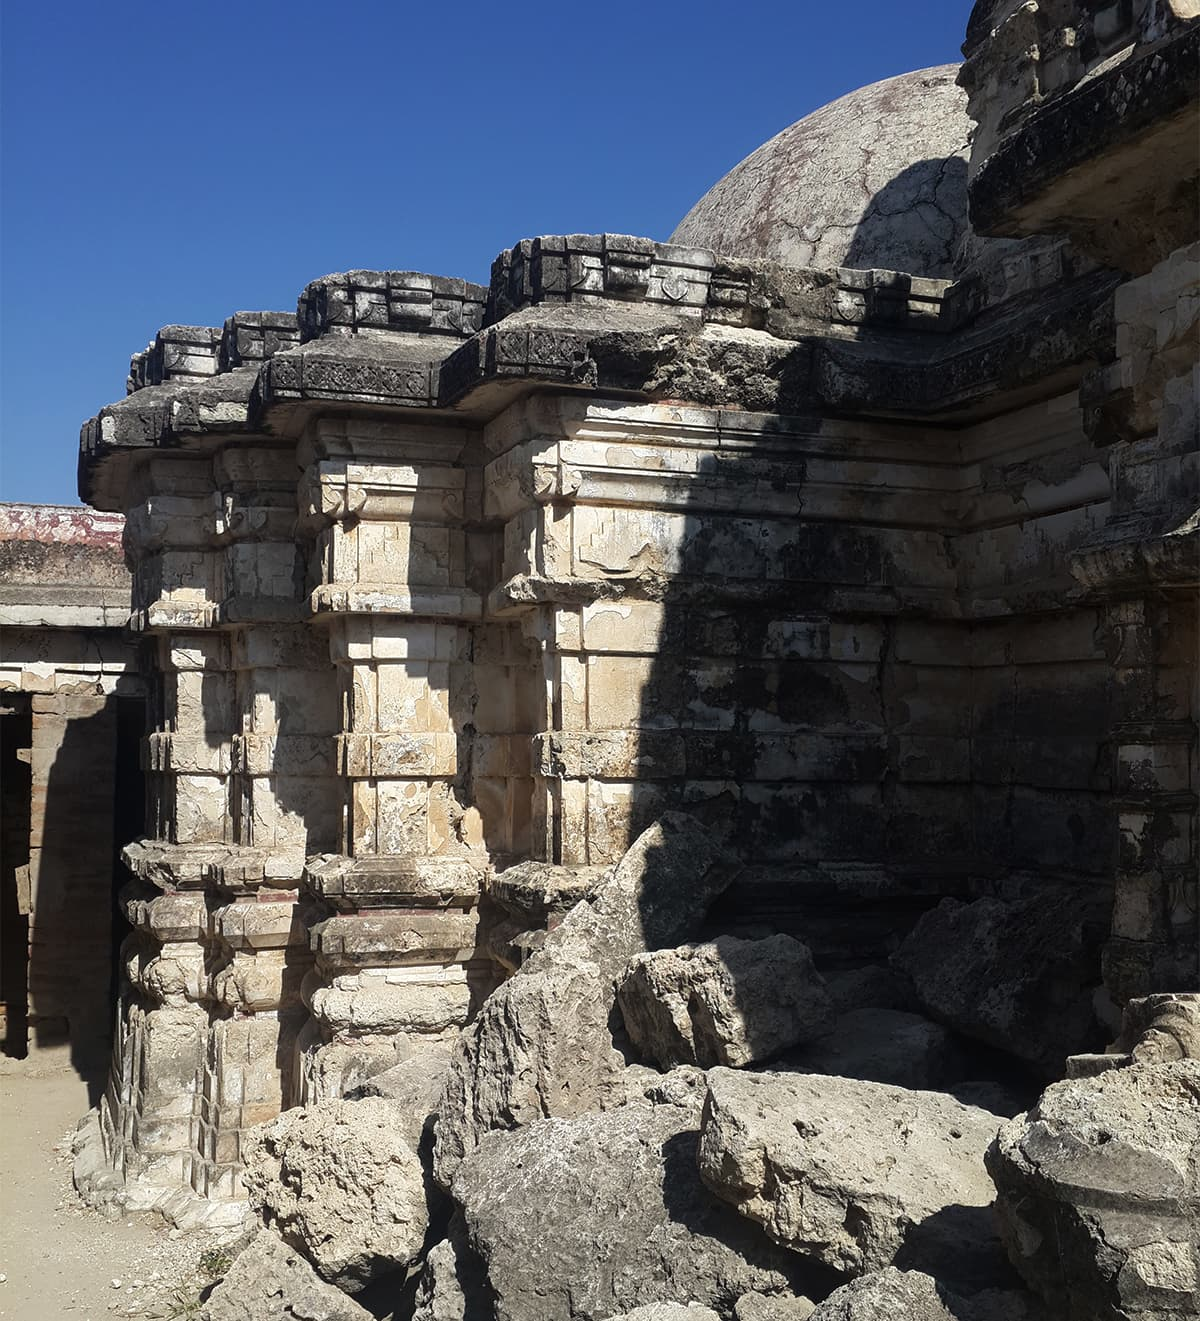 The partially-destroyed portions of the temple. — Photo by author